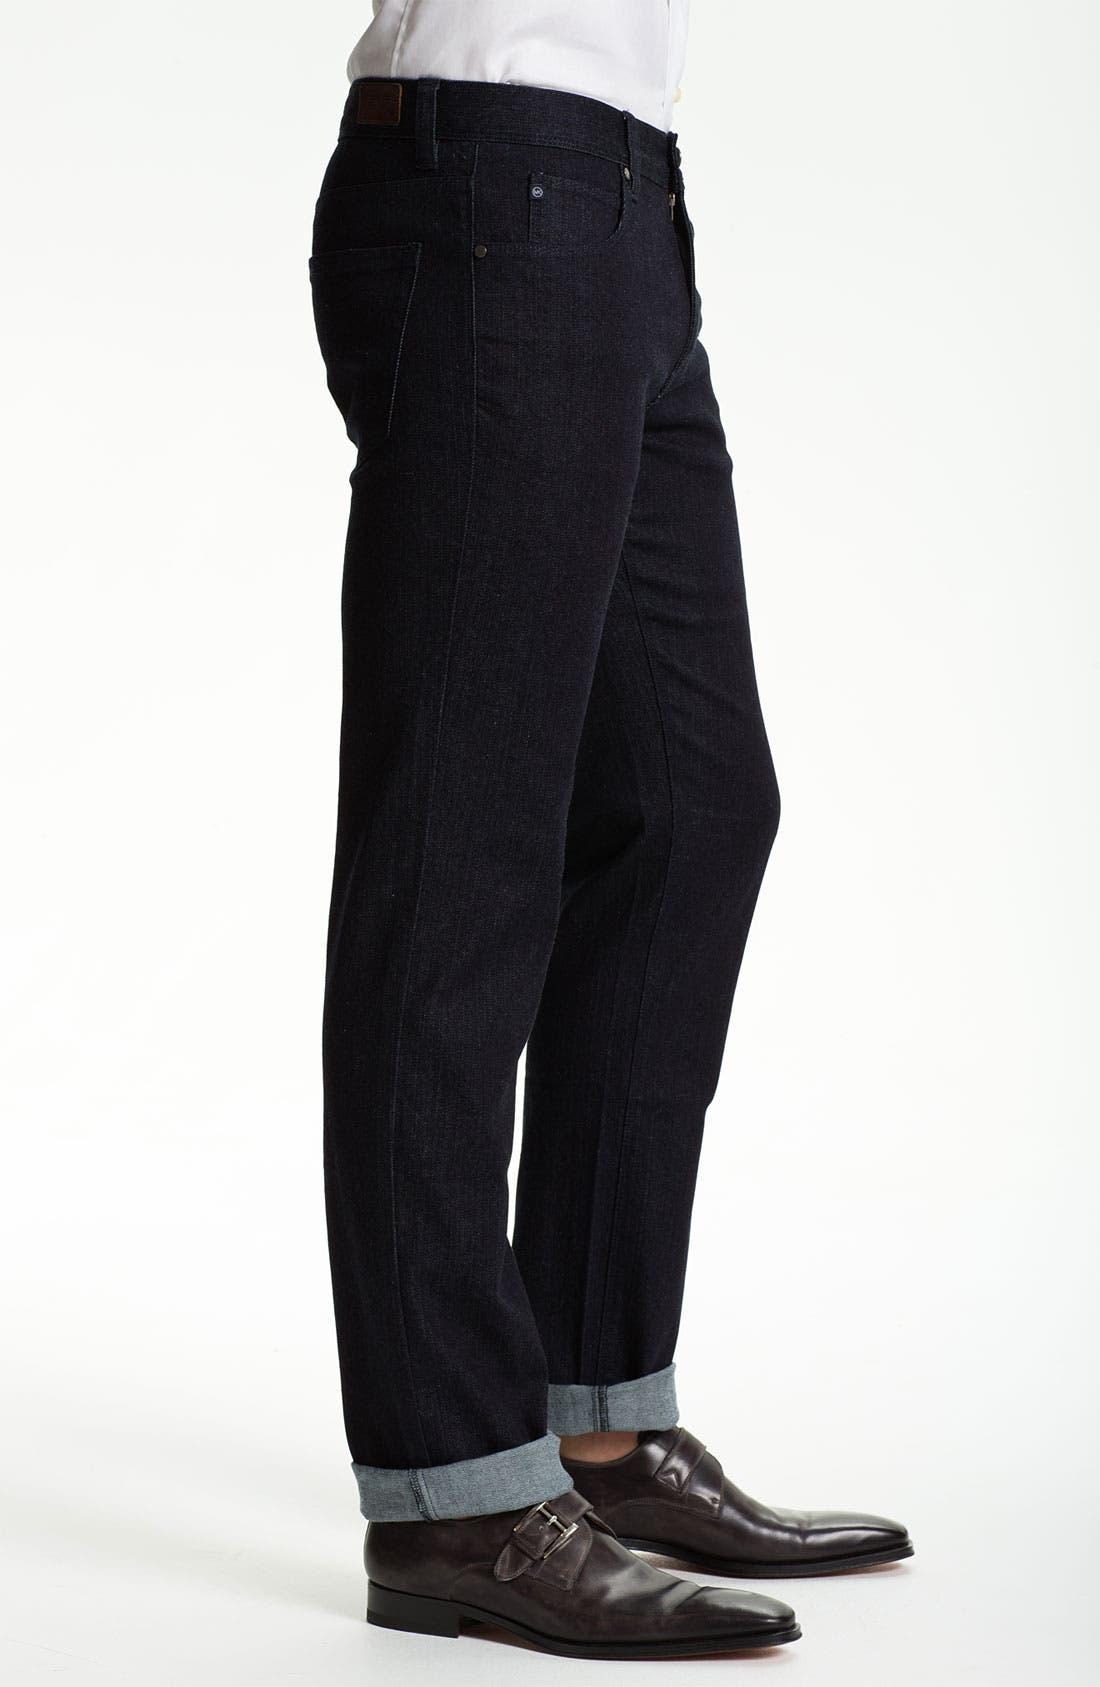 Alternate Image 3  - Michael Kors Straight Leg Jeans (Dark Rinse)